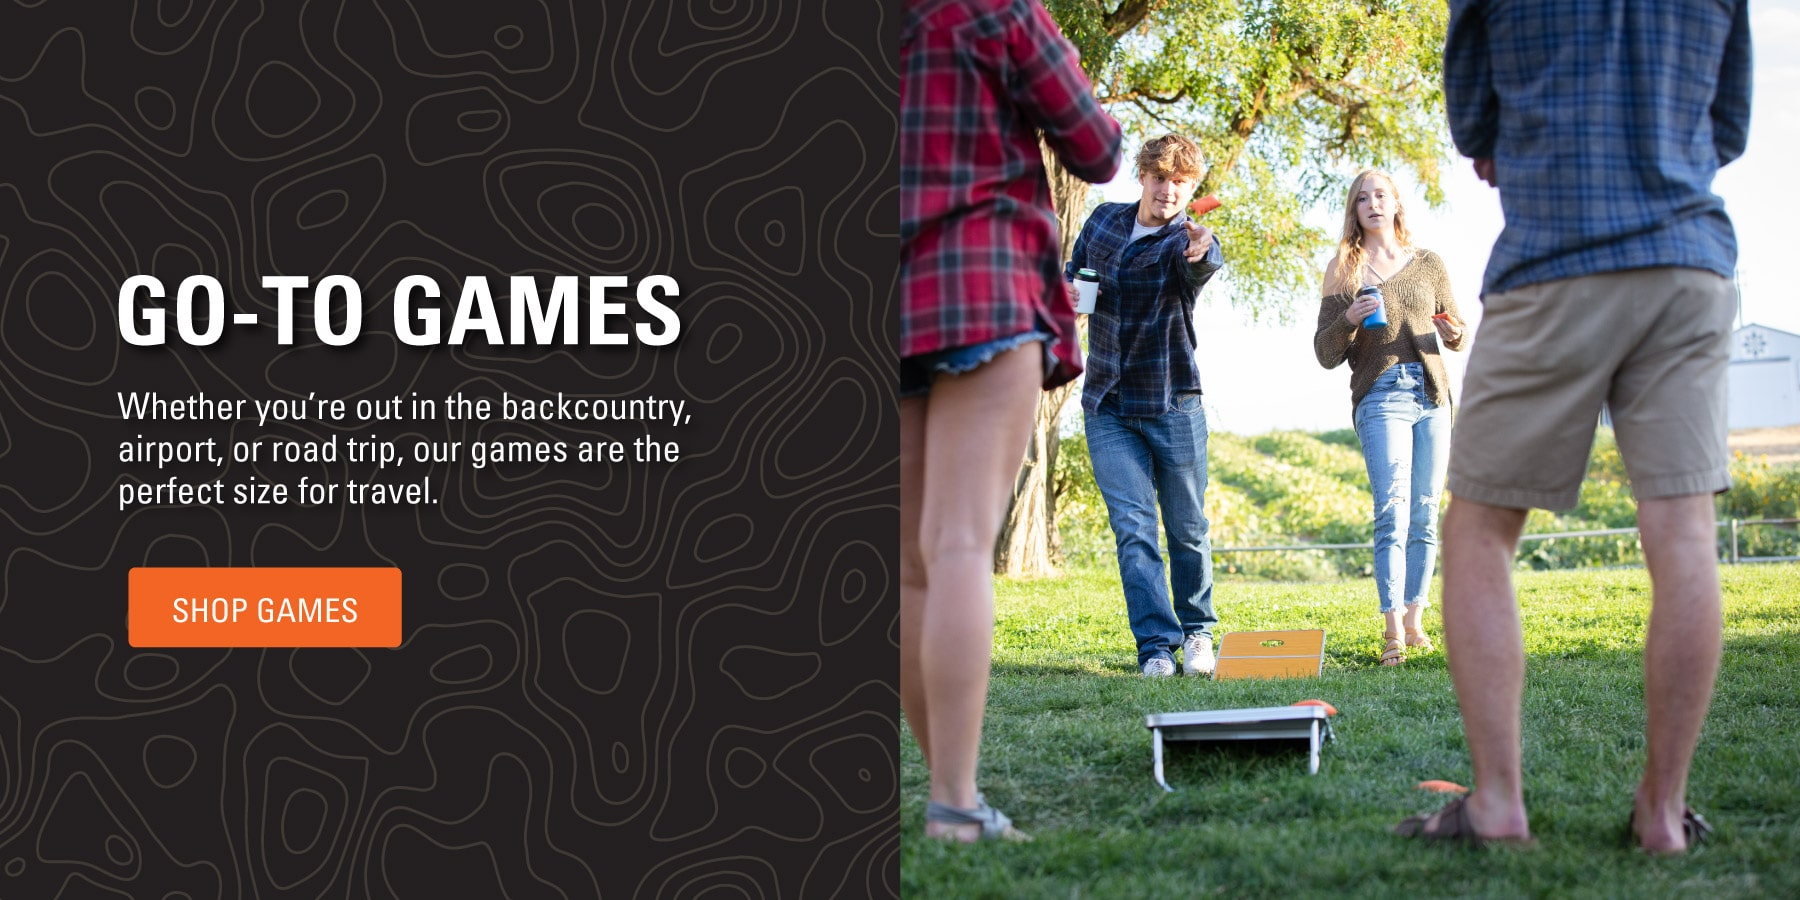 Whether you're out in the backcountry, airport, or road trip, our games are the perfect size for travel. Shop Games.